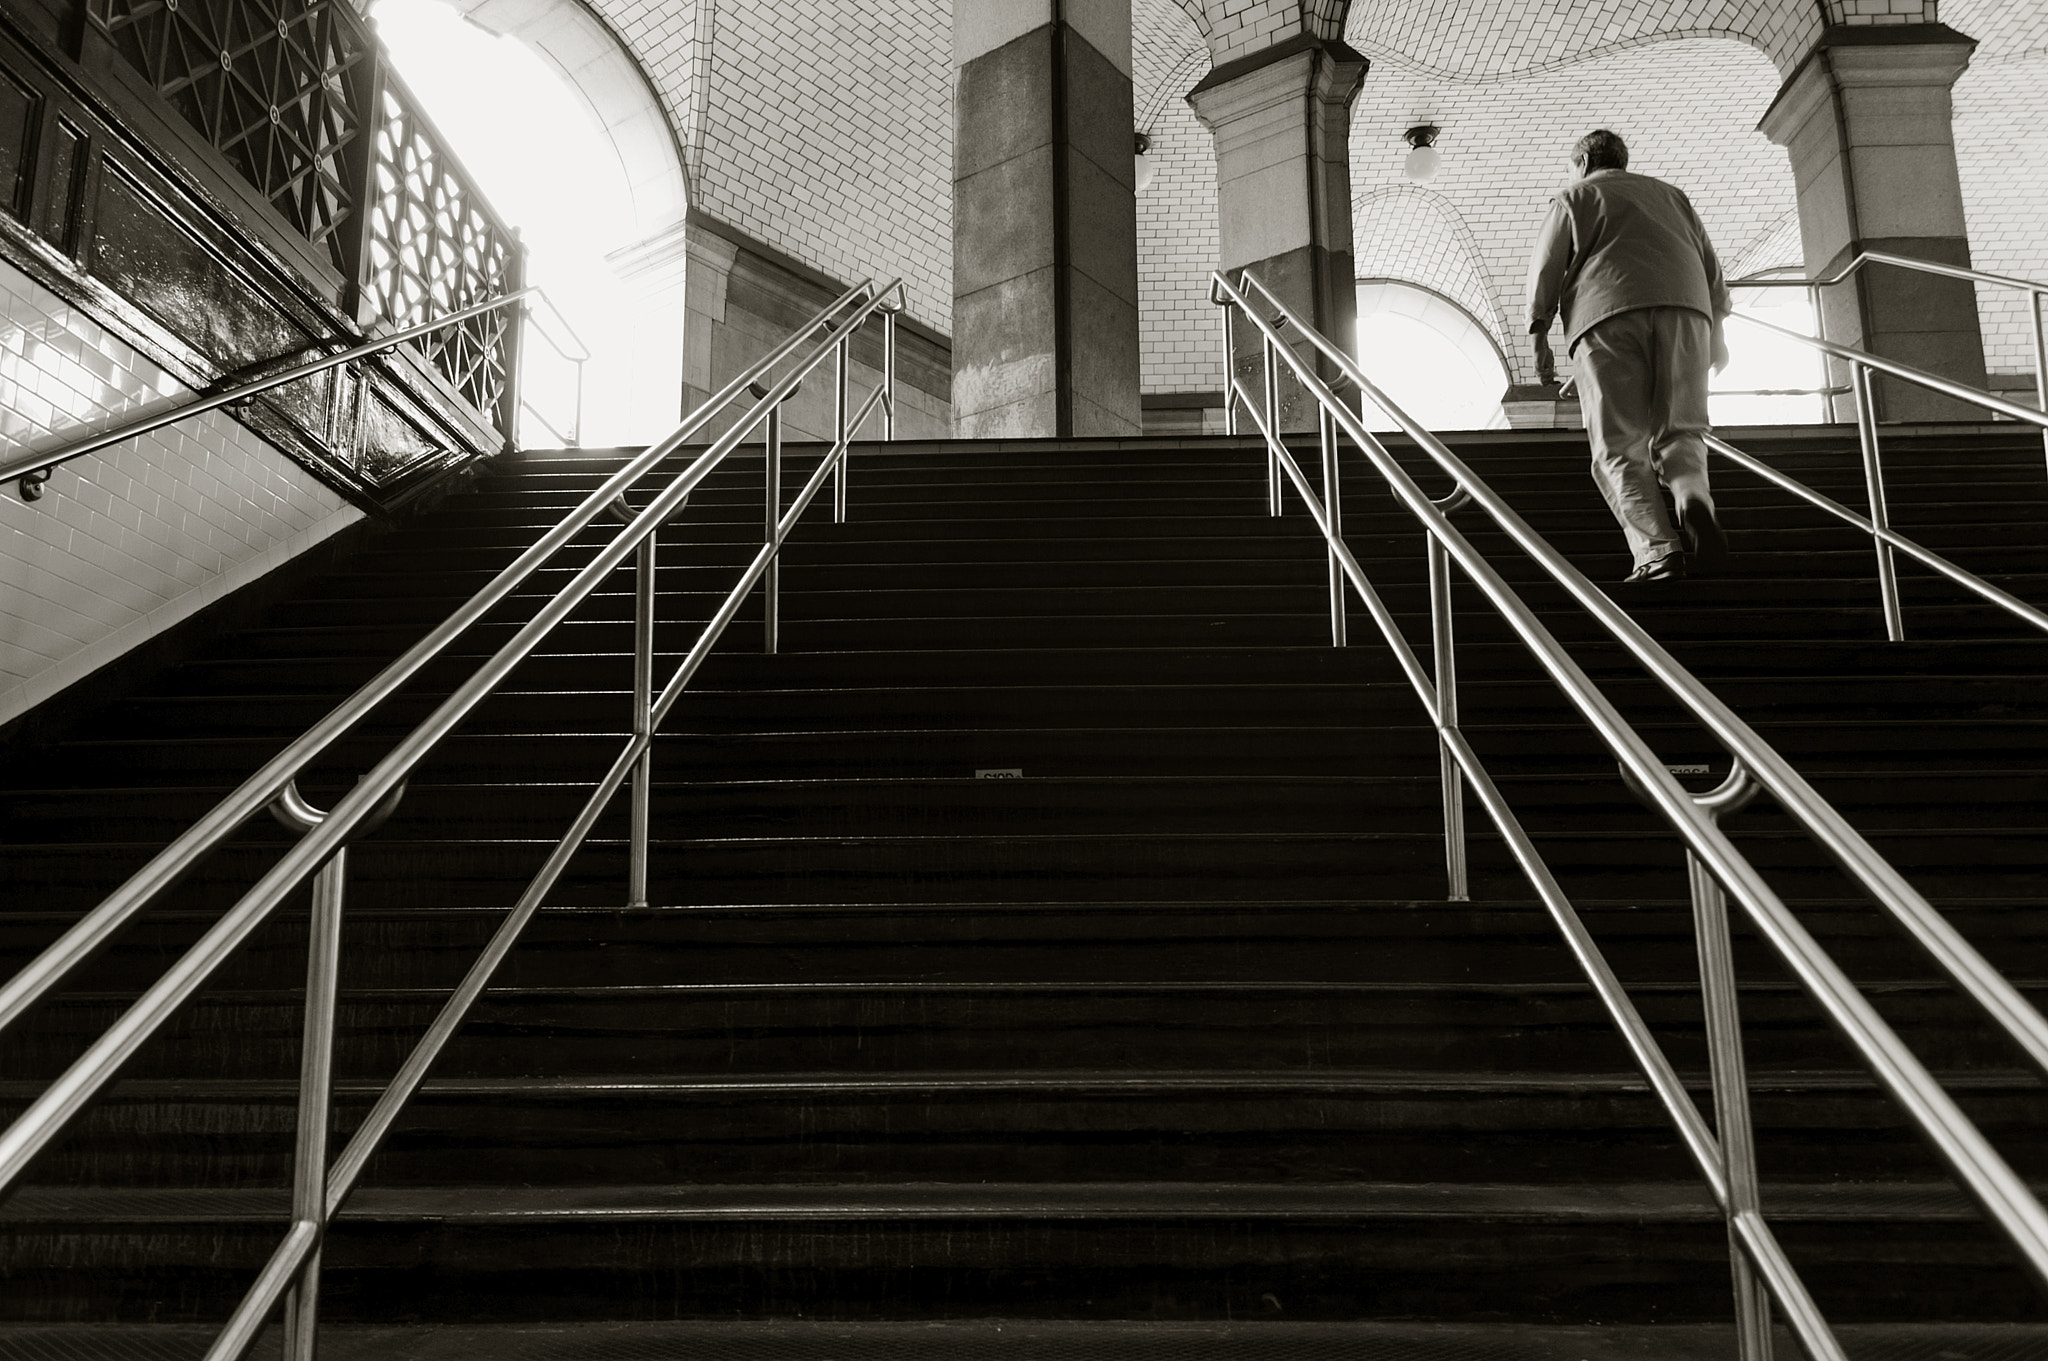 Photograph Subway Stairs by Kent Atwell on 500px